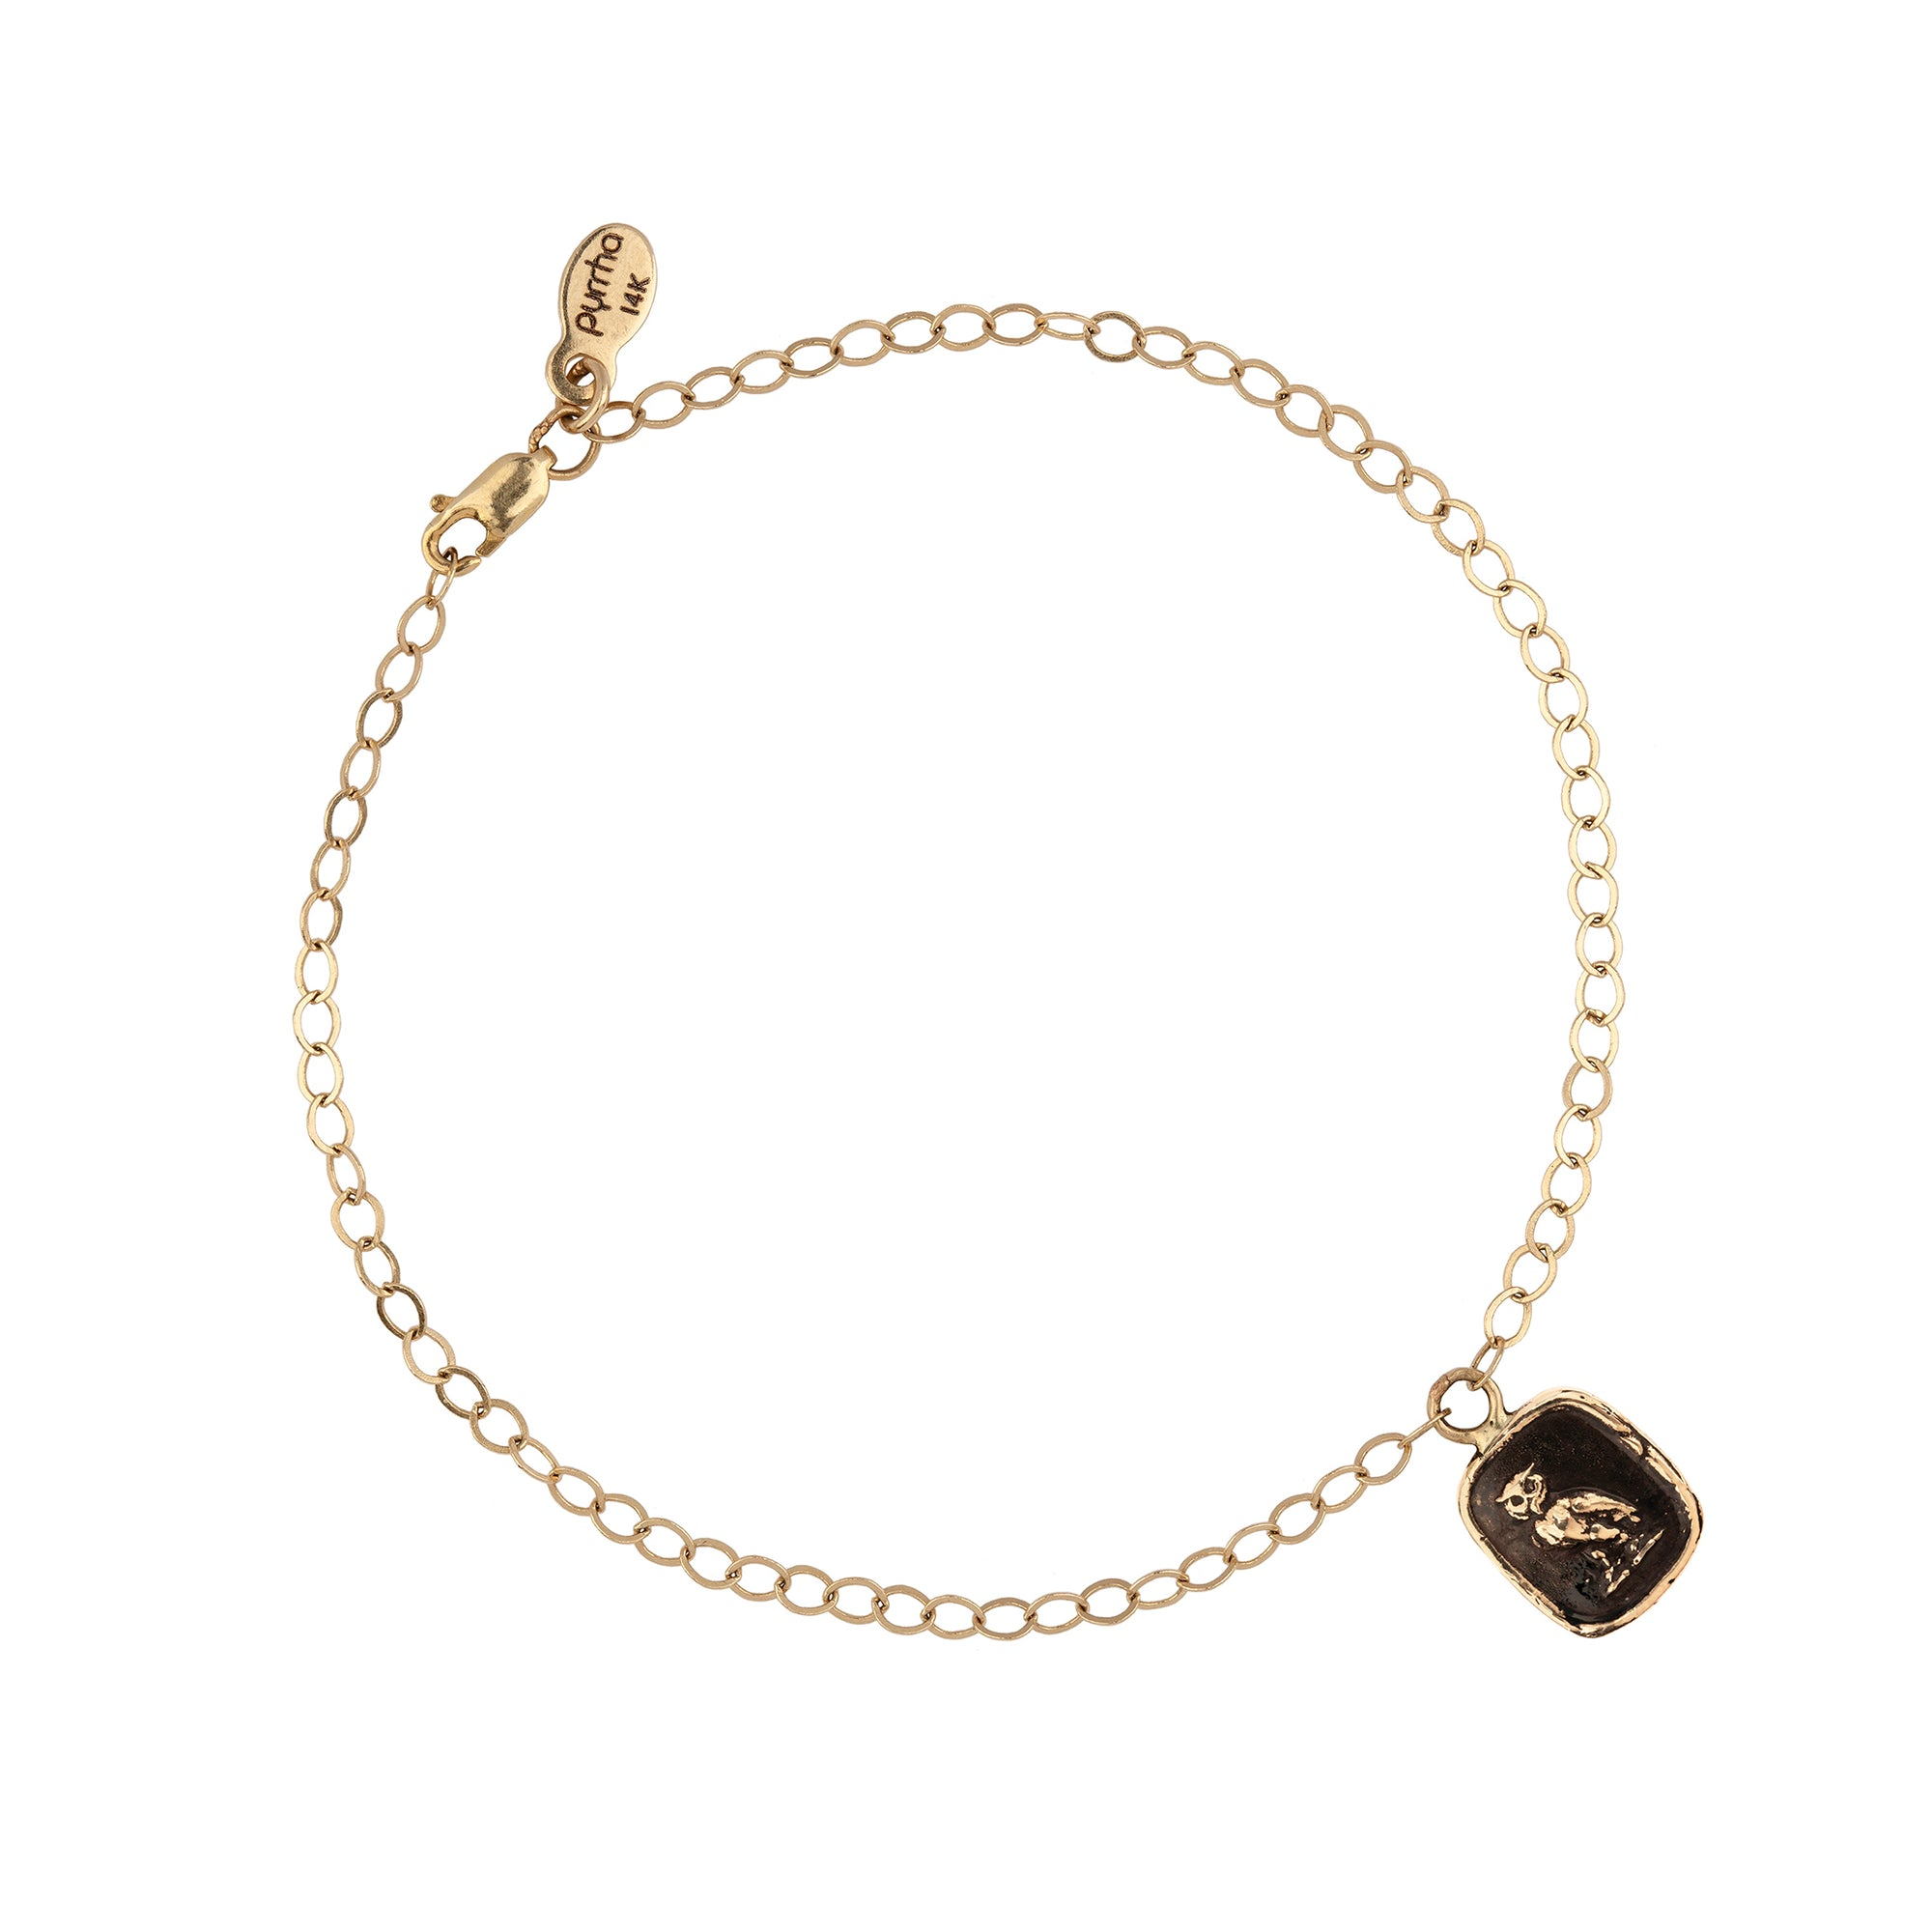 Watch Over Me 14K Gold Chain Bracelet